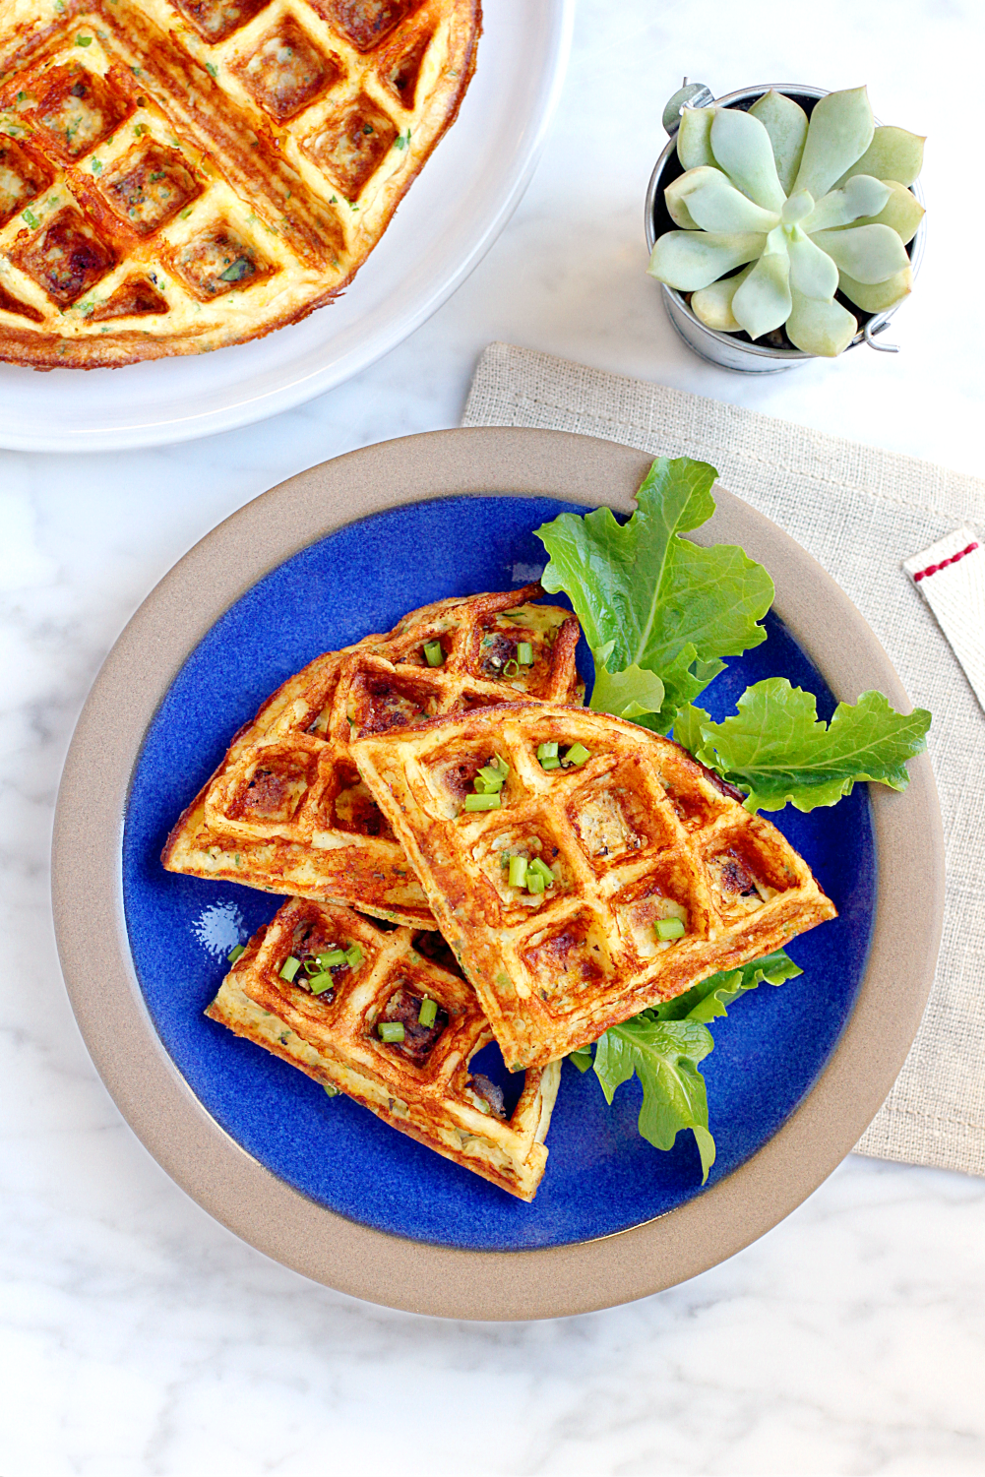 Image of cheesy cauliflower waffles from the top.